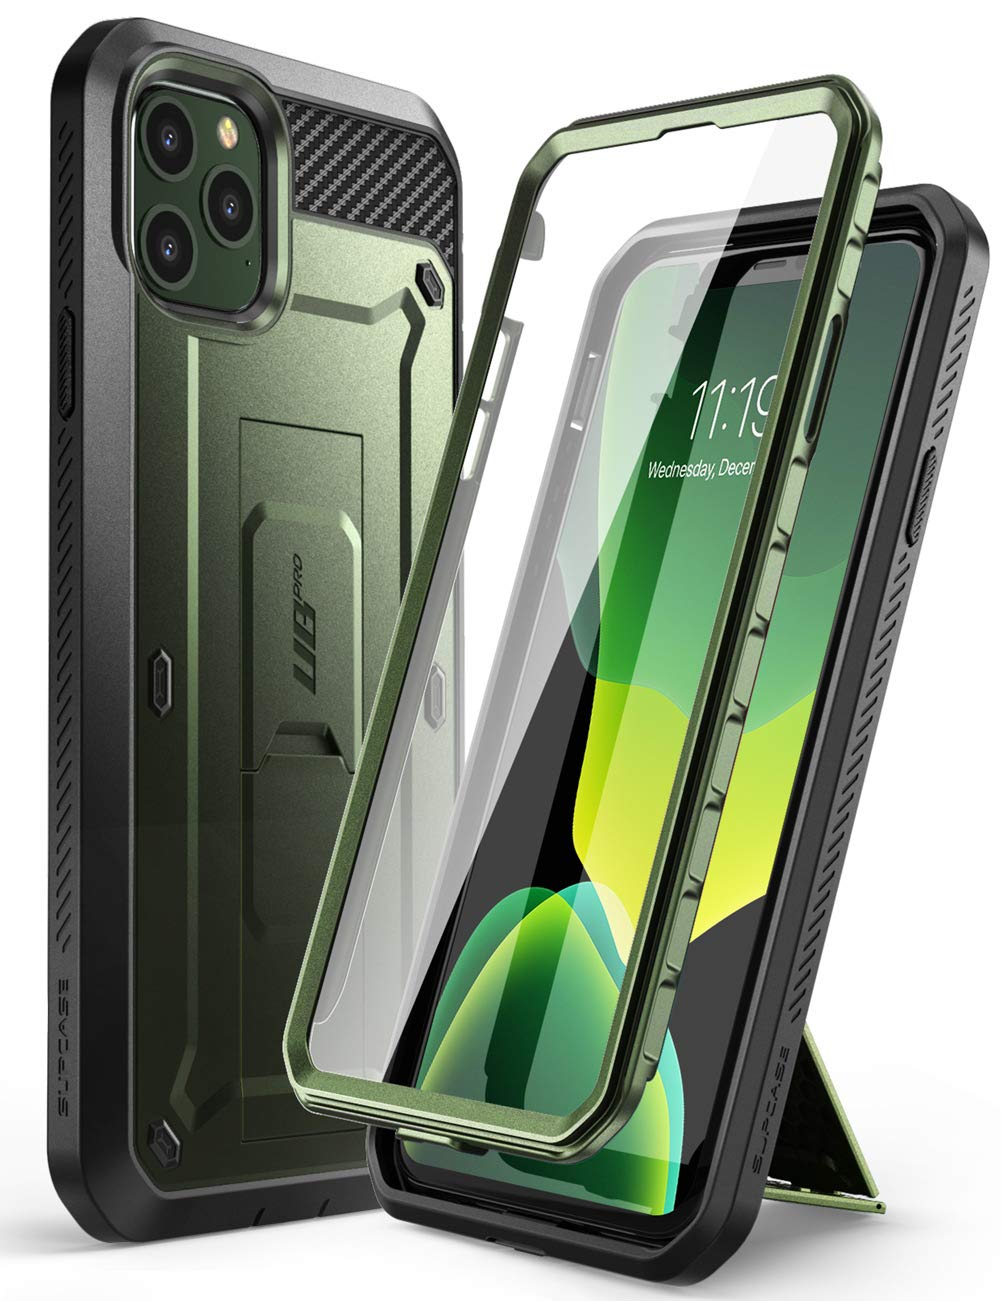 SUPCASE Unicorn Beetle Pro Series Phone Case Designed for iPhone 11 Pro Max 6.5 Inch (2019 Release), Built-in Screen Protector Full-Body Rugged Holster Case(MetallicGreen)